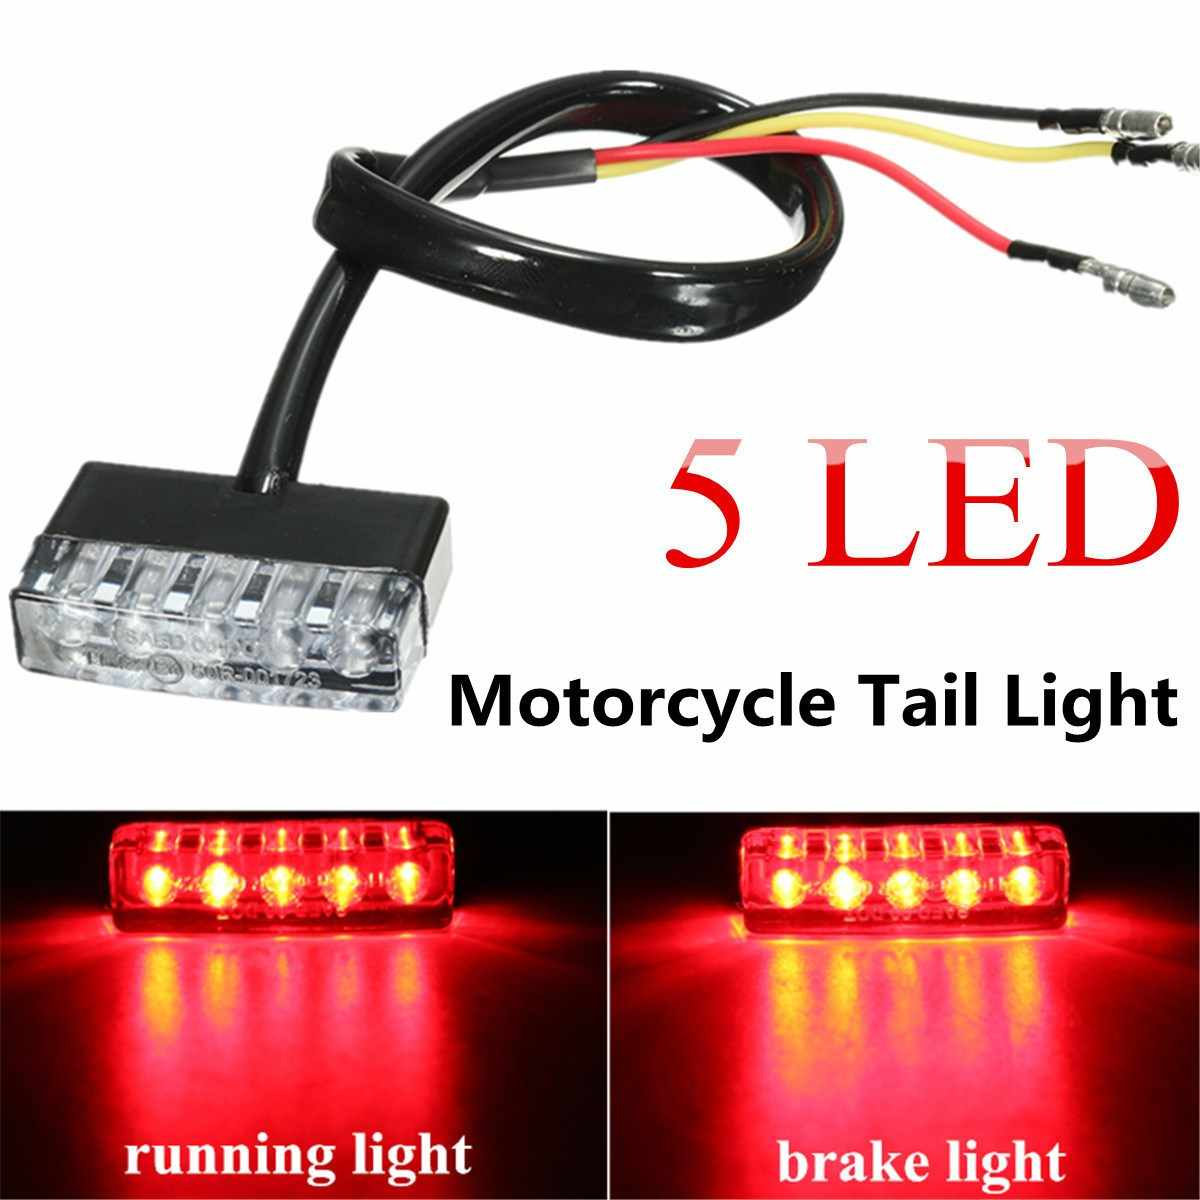 hight resolution of 12v universal motorcycle atv bike mini 5 led rear lamp taillight running stop signal brake lights